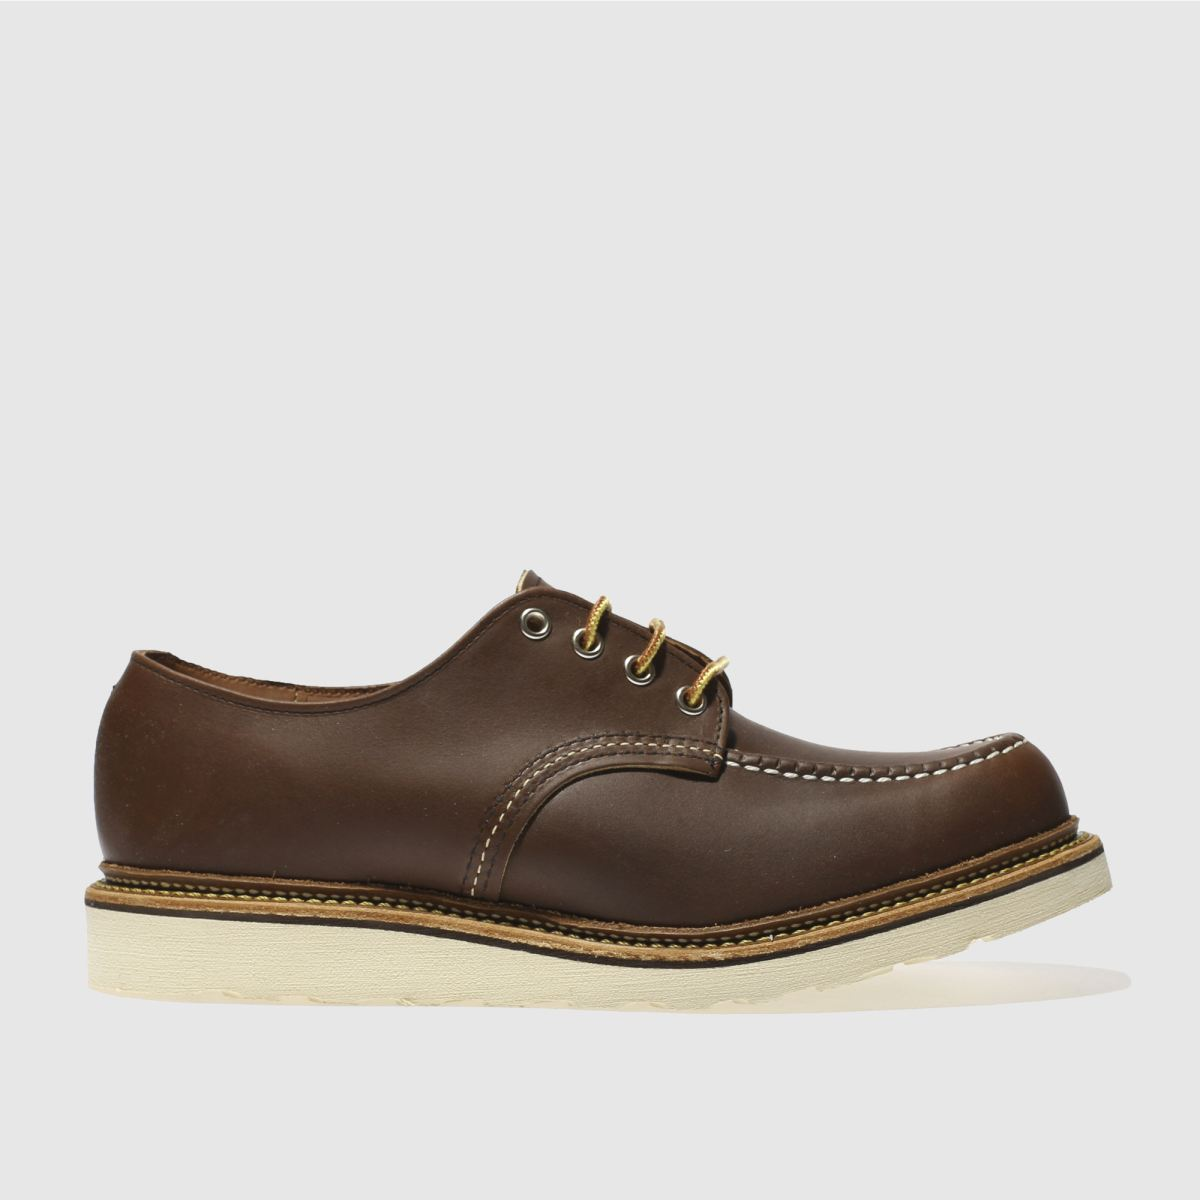 red wing brown classic oxford shoes